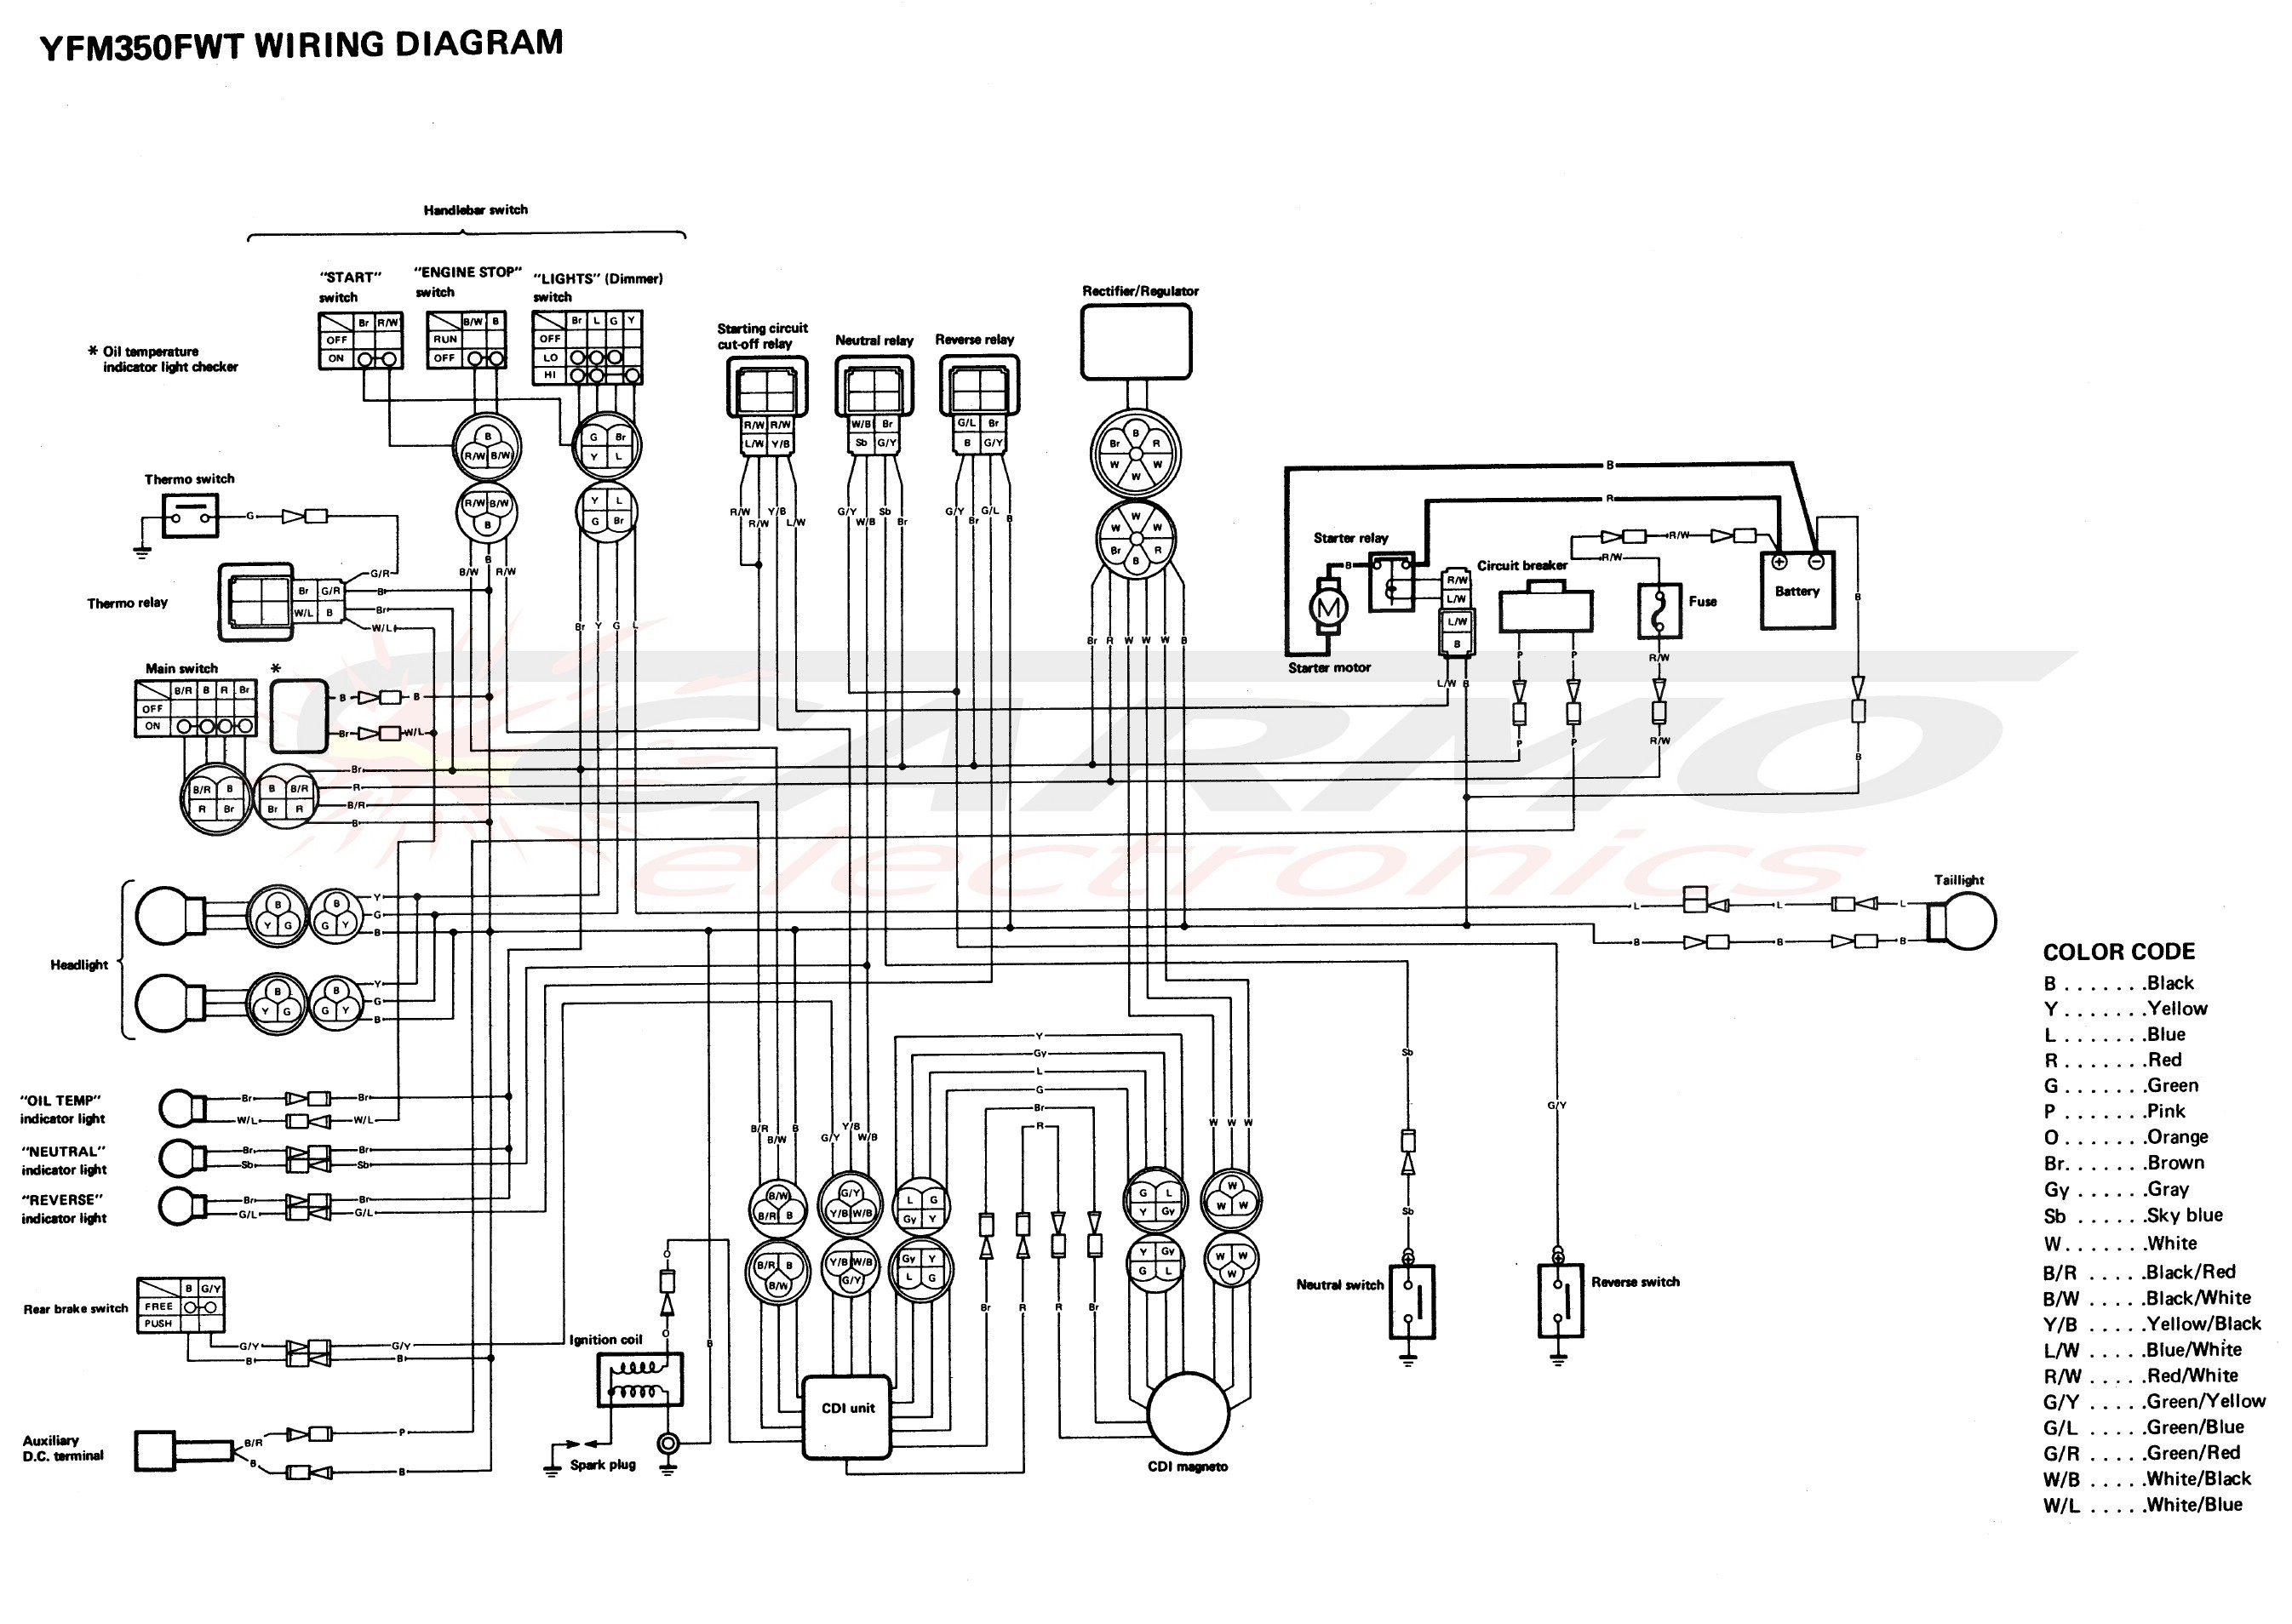 Yamaha Yfm350 Wiring Diagram Electronic Diagrams 01 Big Bear Yfm 350 Books Of U2022 Ptc